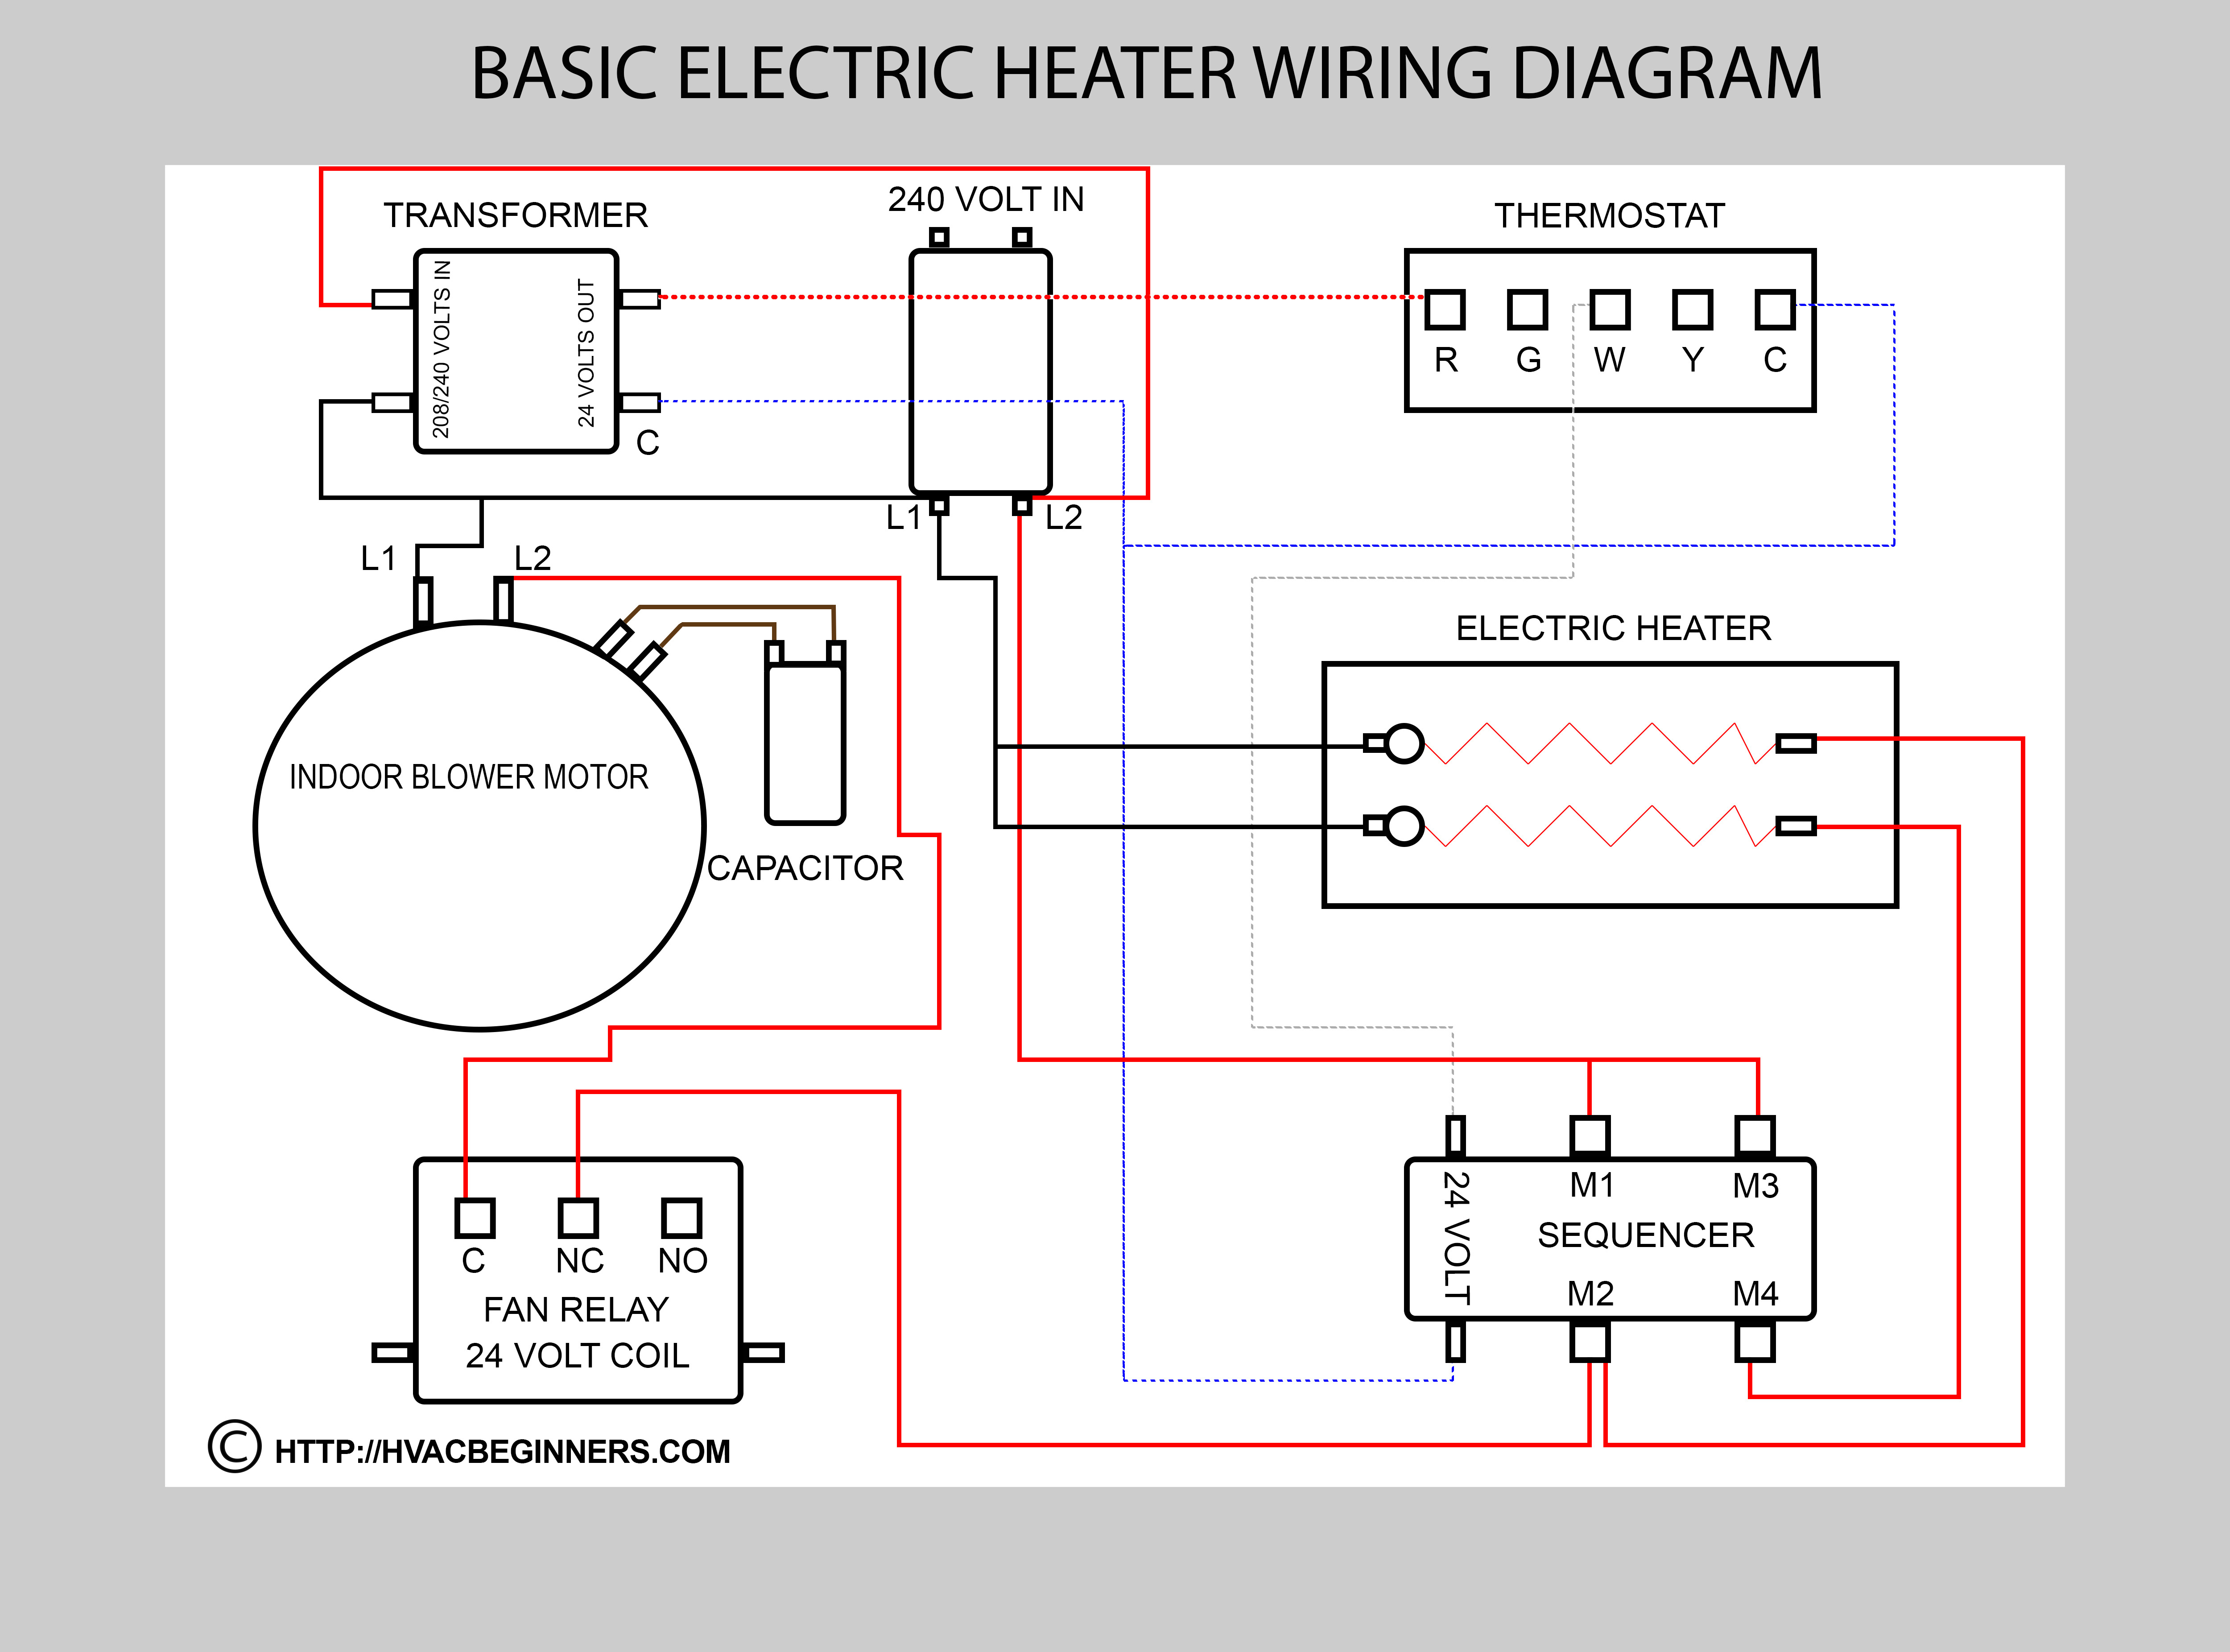 carrier condenser wiring diagram wmjo bbzbrighton uk \u2022 Commercial Wiring Diagrams carrier residential wiring diagrams online wiring diagram rh 20 code3e co compressor wiring diagram carrier condenser